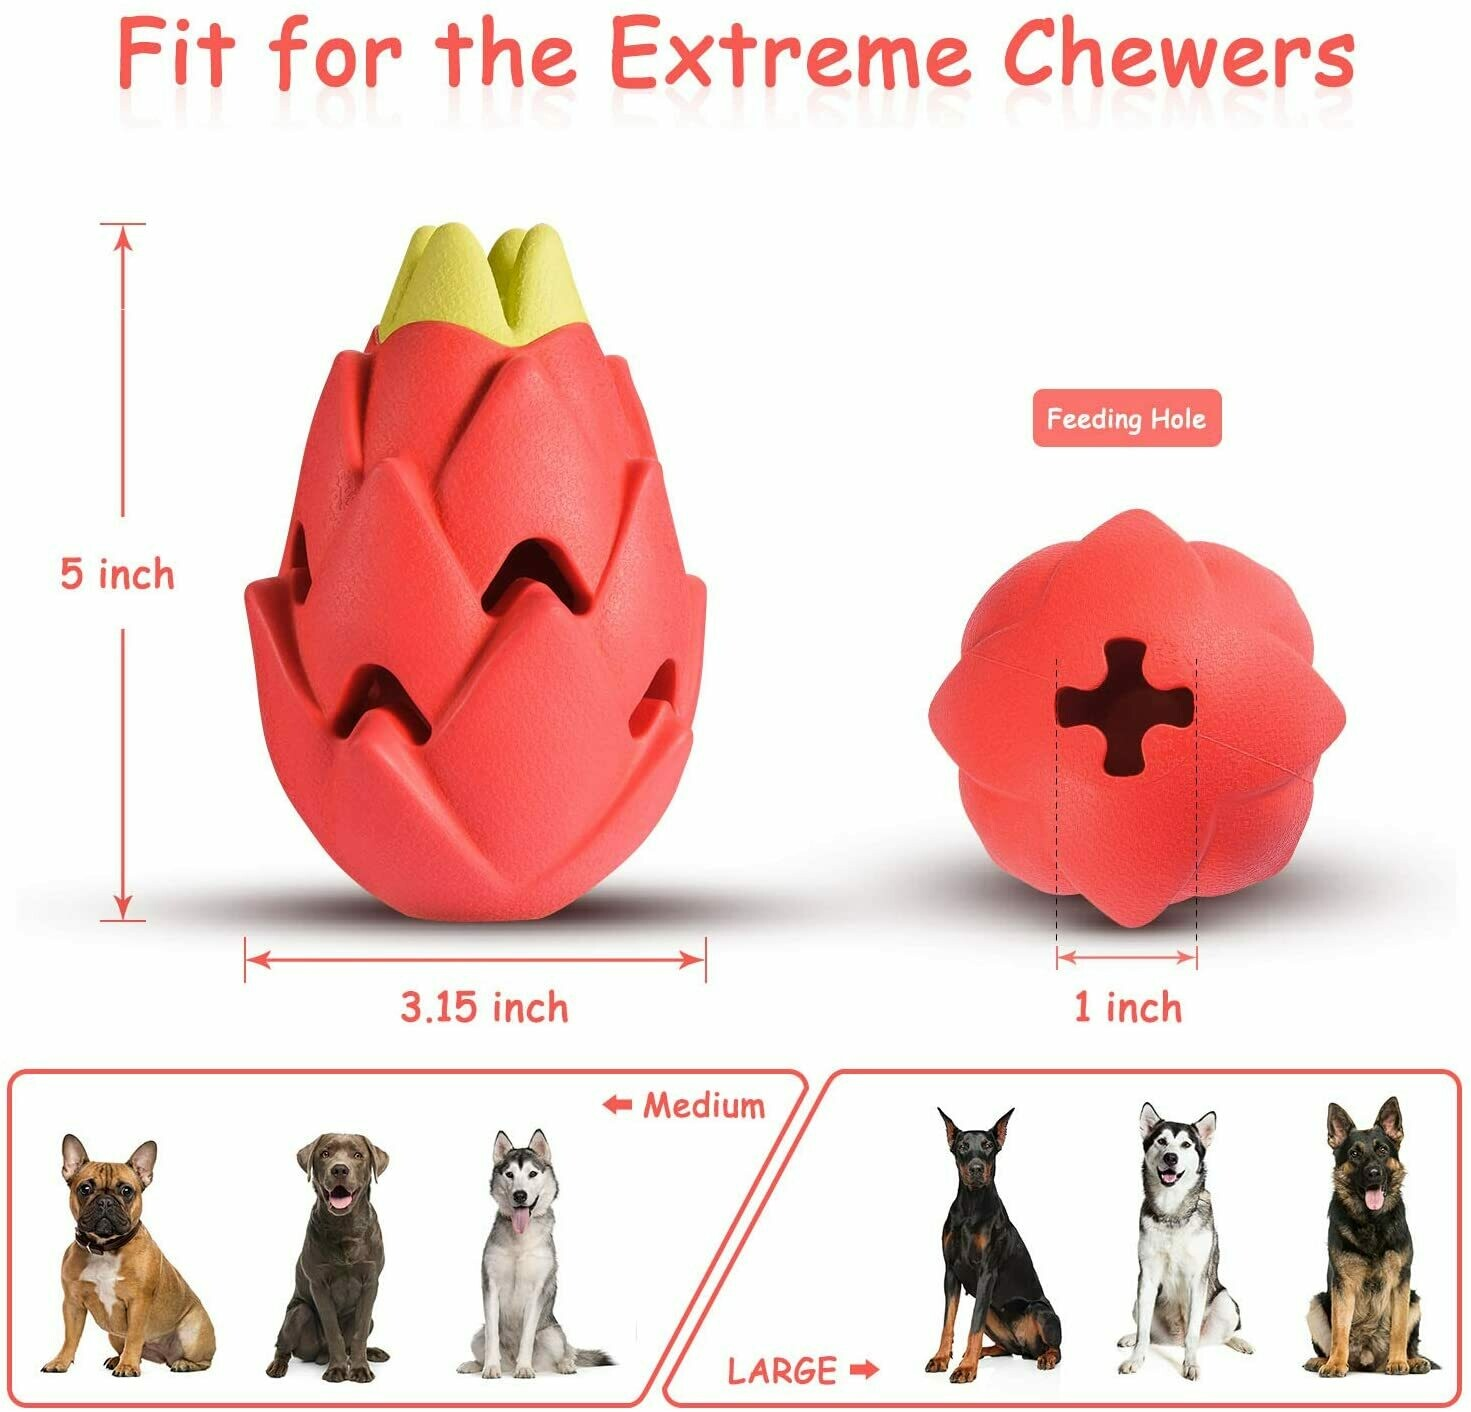 Cutiful Dog Toys for Aggressive Chewers Large Medium Breed Dog Chew Toys Dog Toothbrush Nearly Indestructible Squeaky Interactive Tough Extremely Durable Treat Dental Toys for Medium Large Dogs